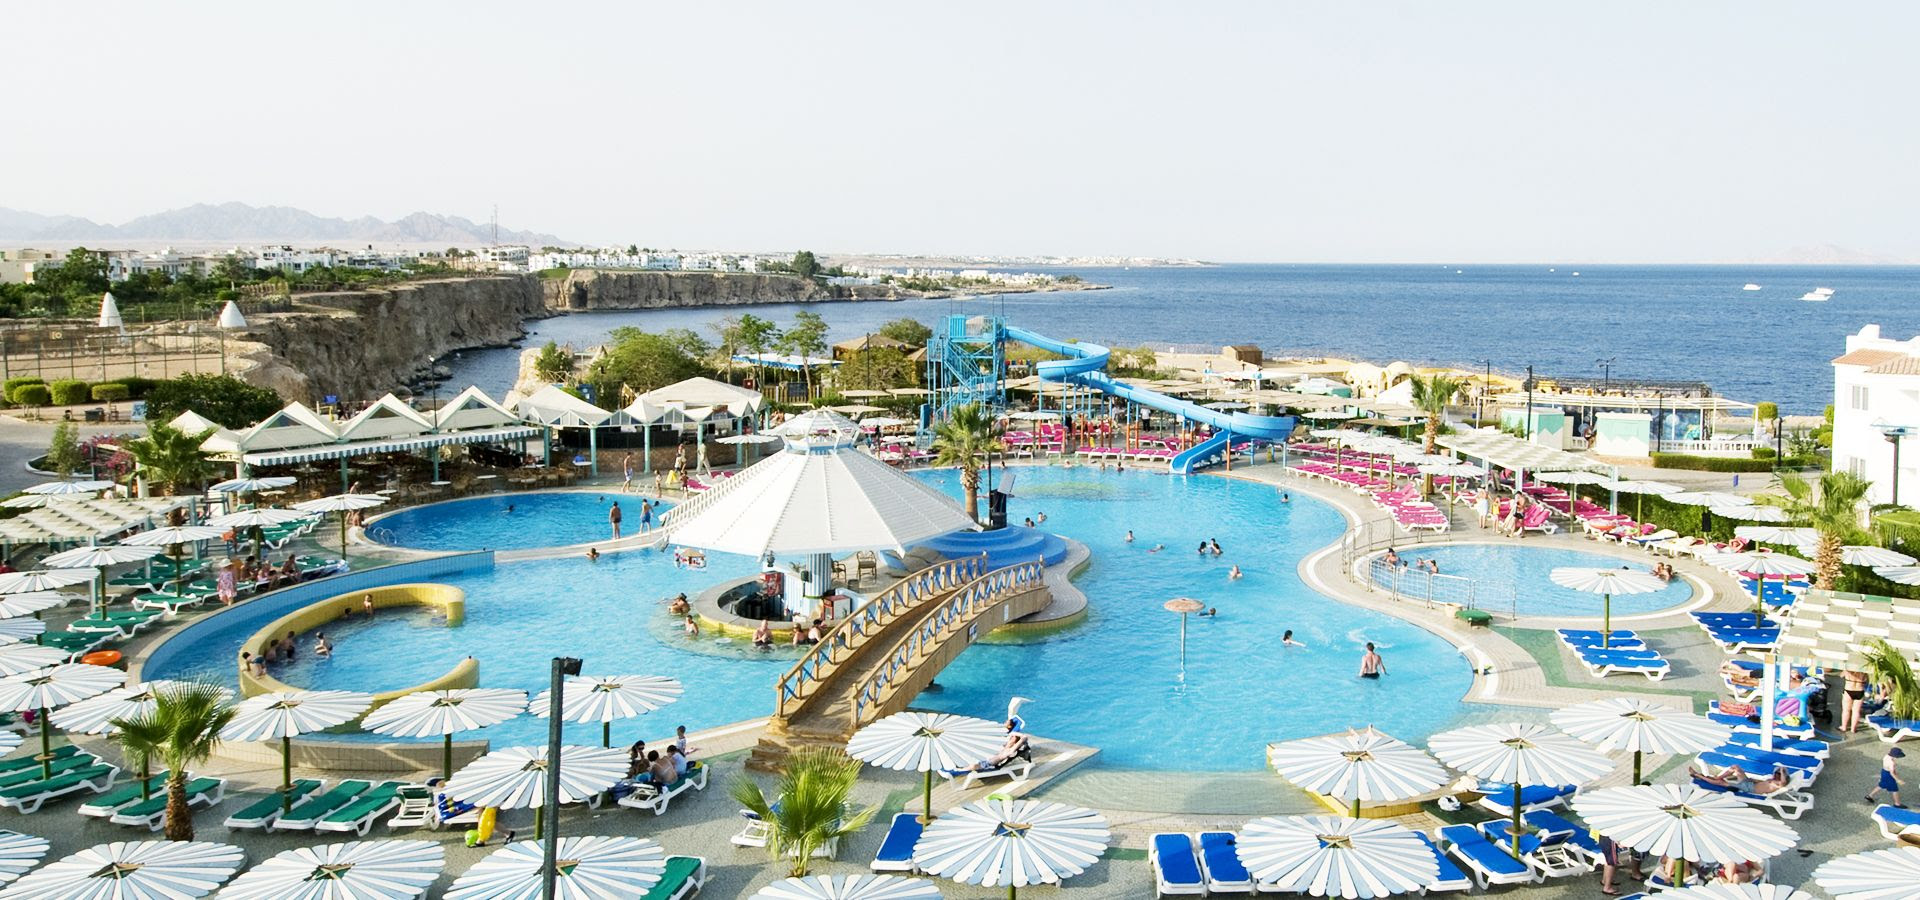 Hotel Dreams Beach Resort Sharm El Sheikh Egypt Sharm El